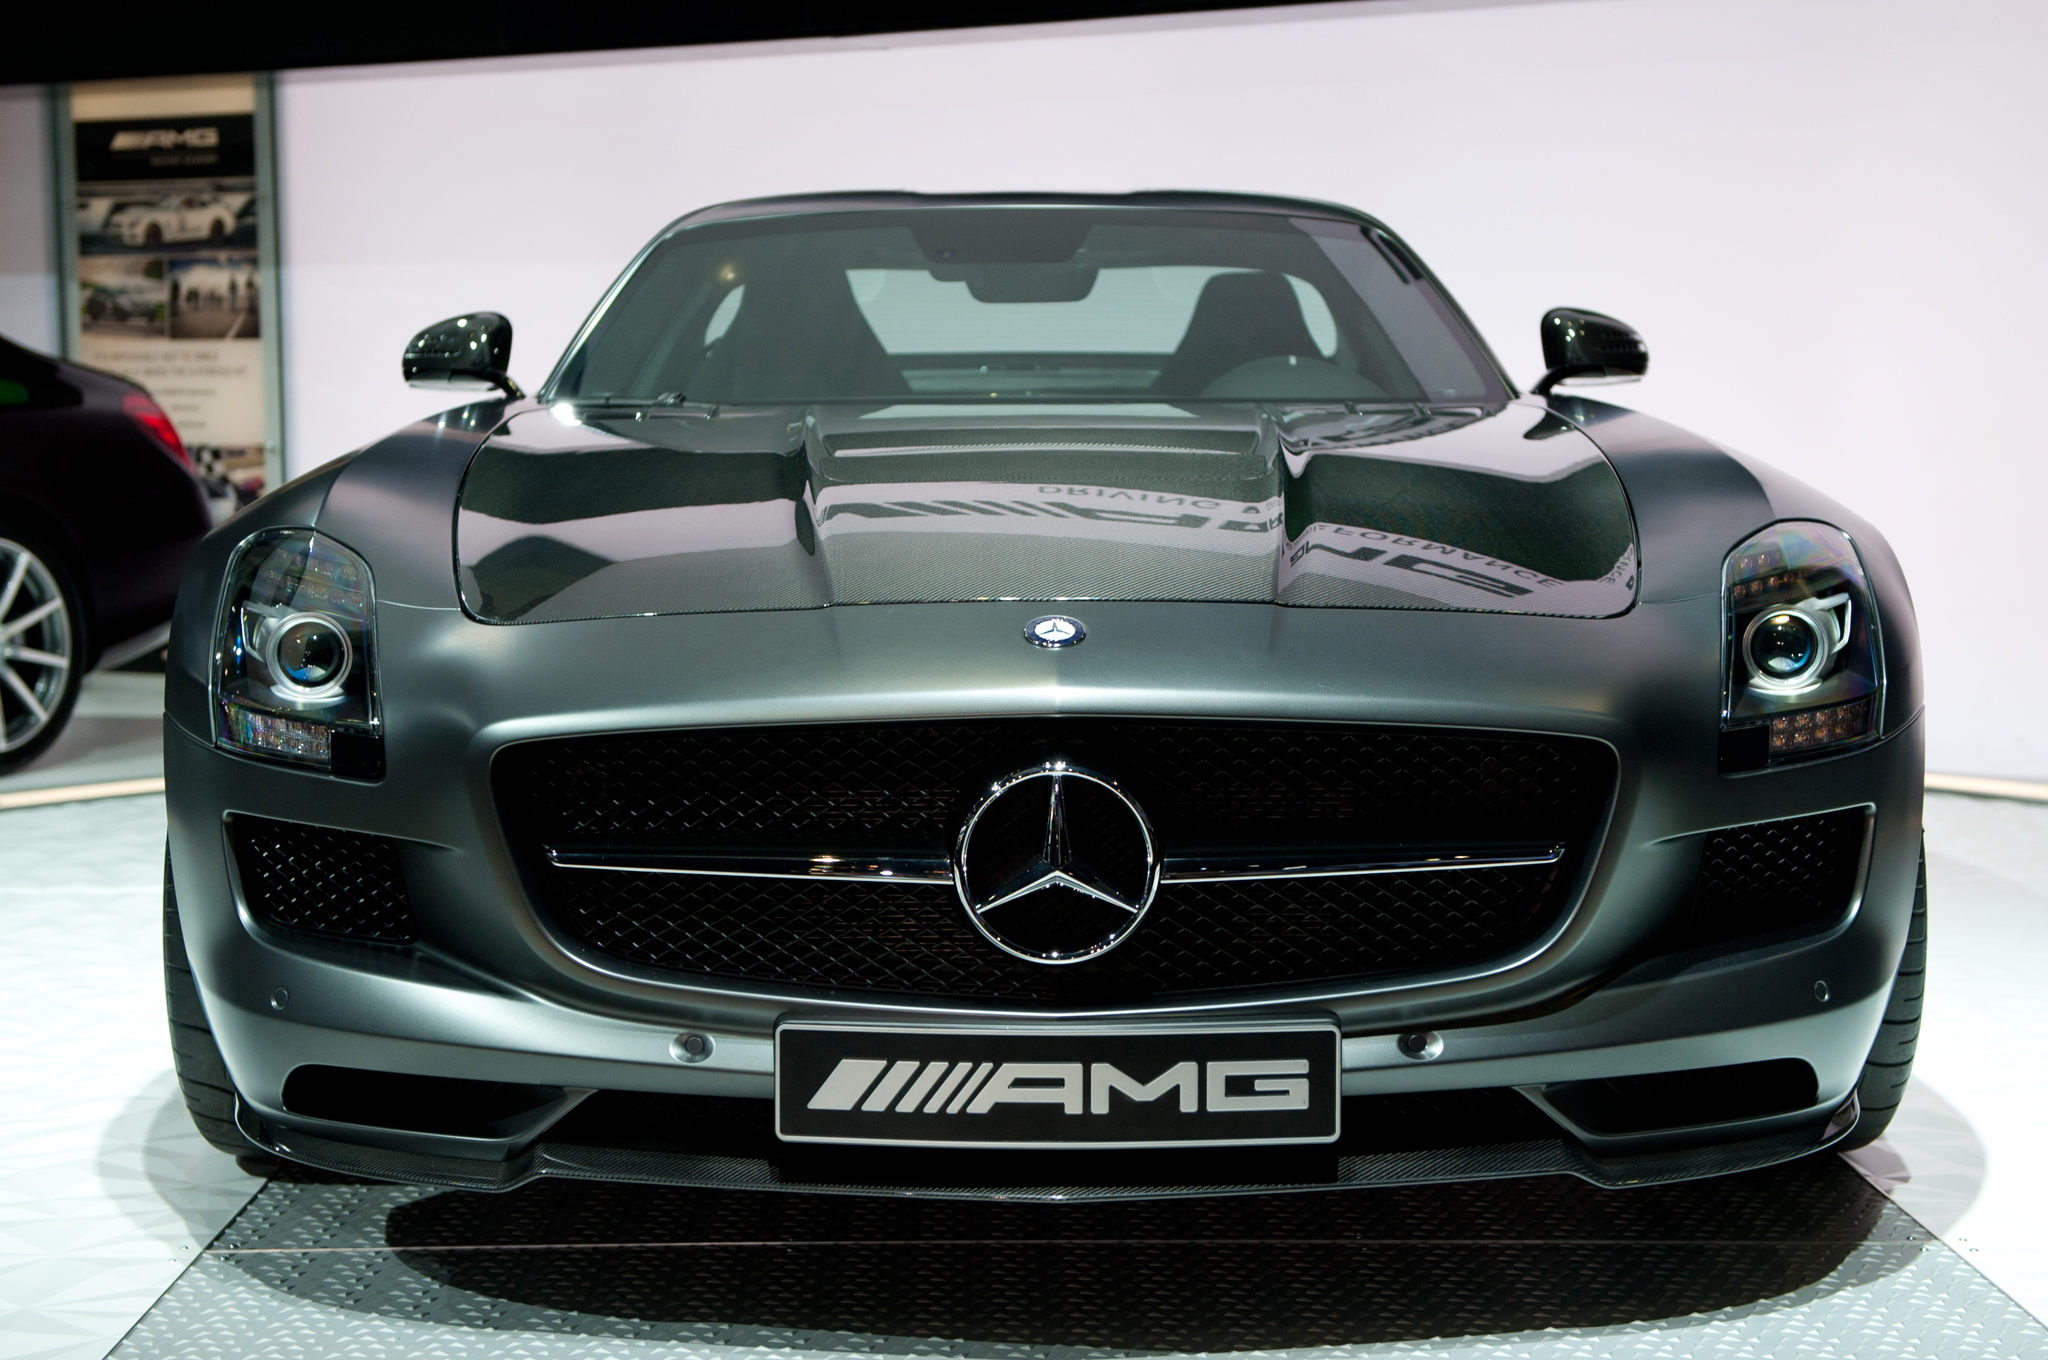 2015 mercedes benz sls amg gt final edition image 16 for 2015 mercedes benz sls amg